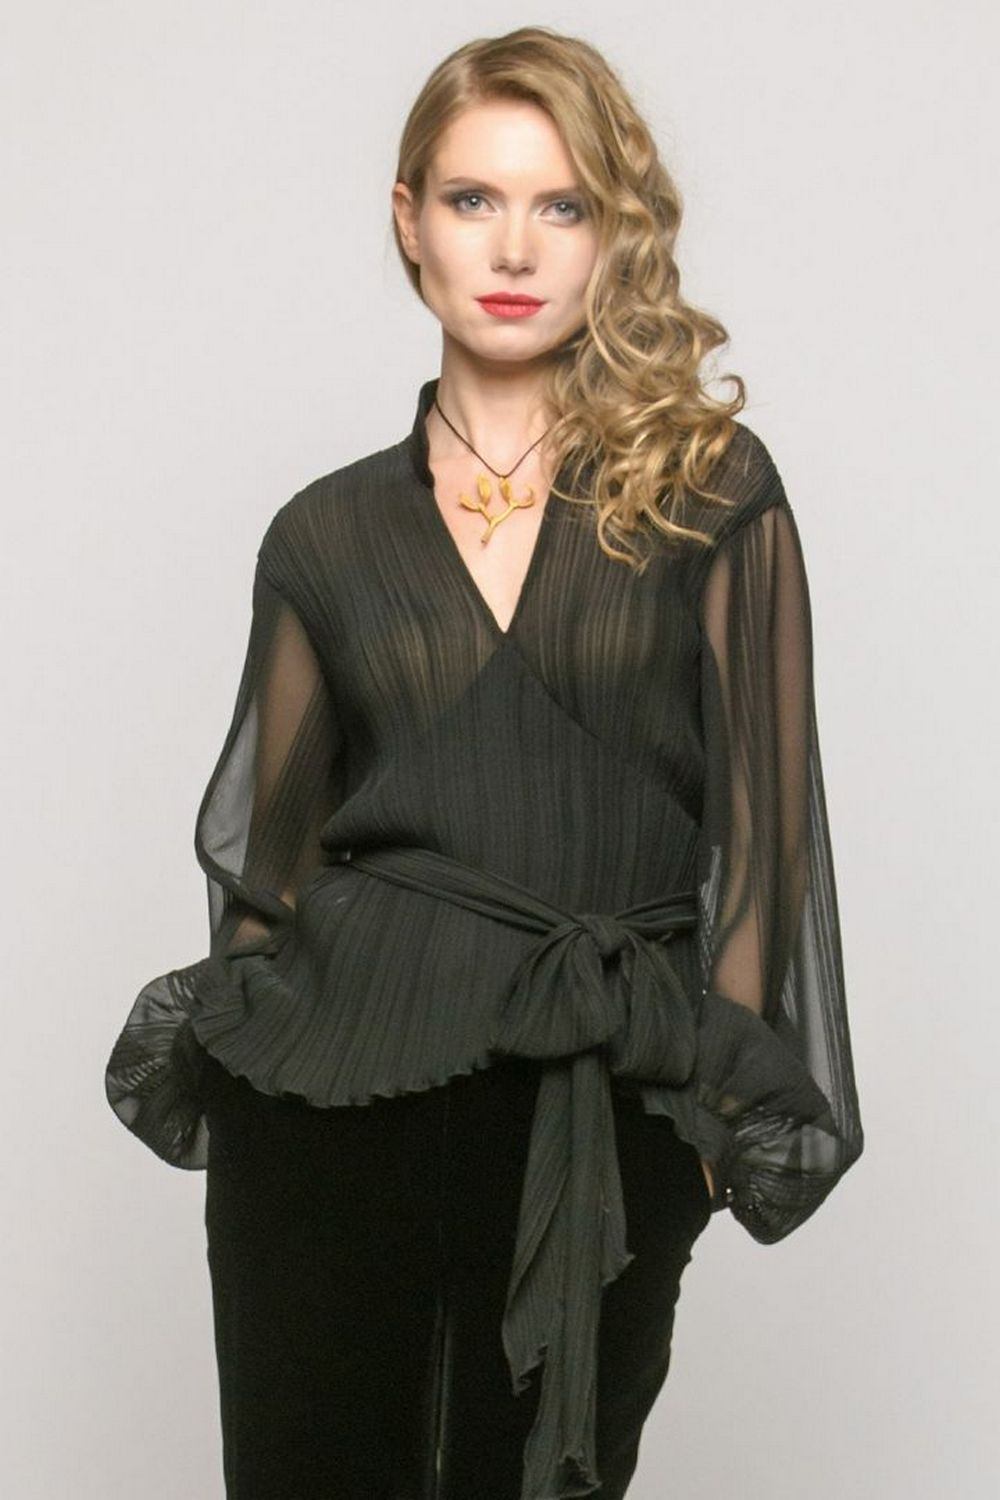 Buy Black silk women`s blouse, Fashionable stylish Long sleeve V neck blouse